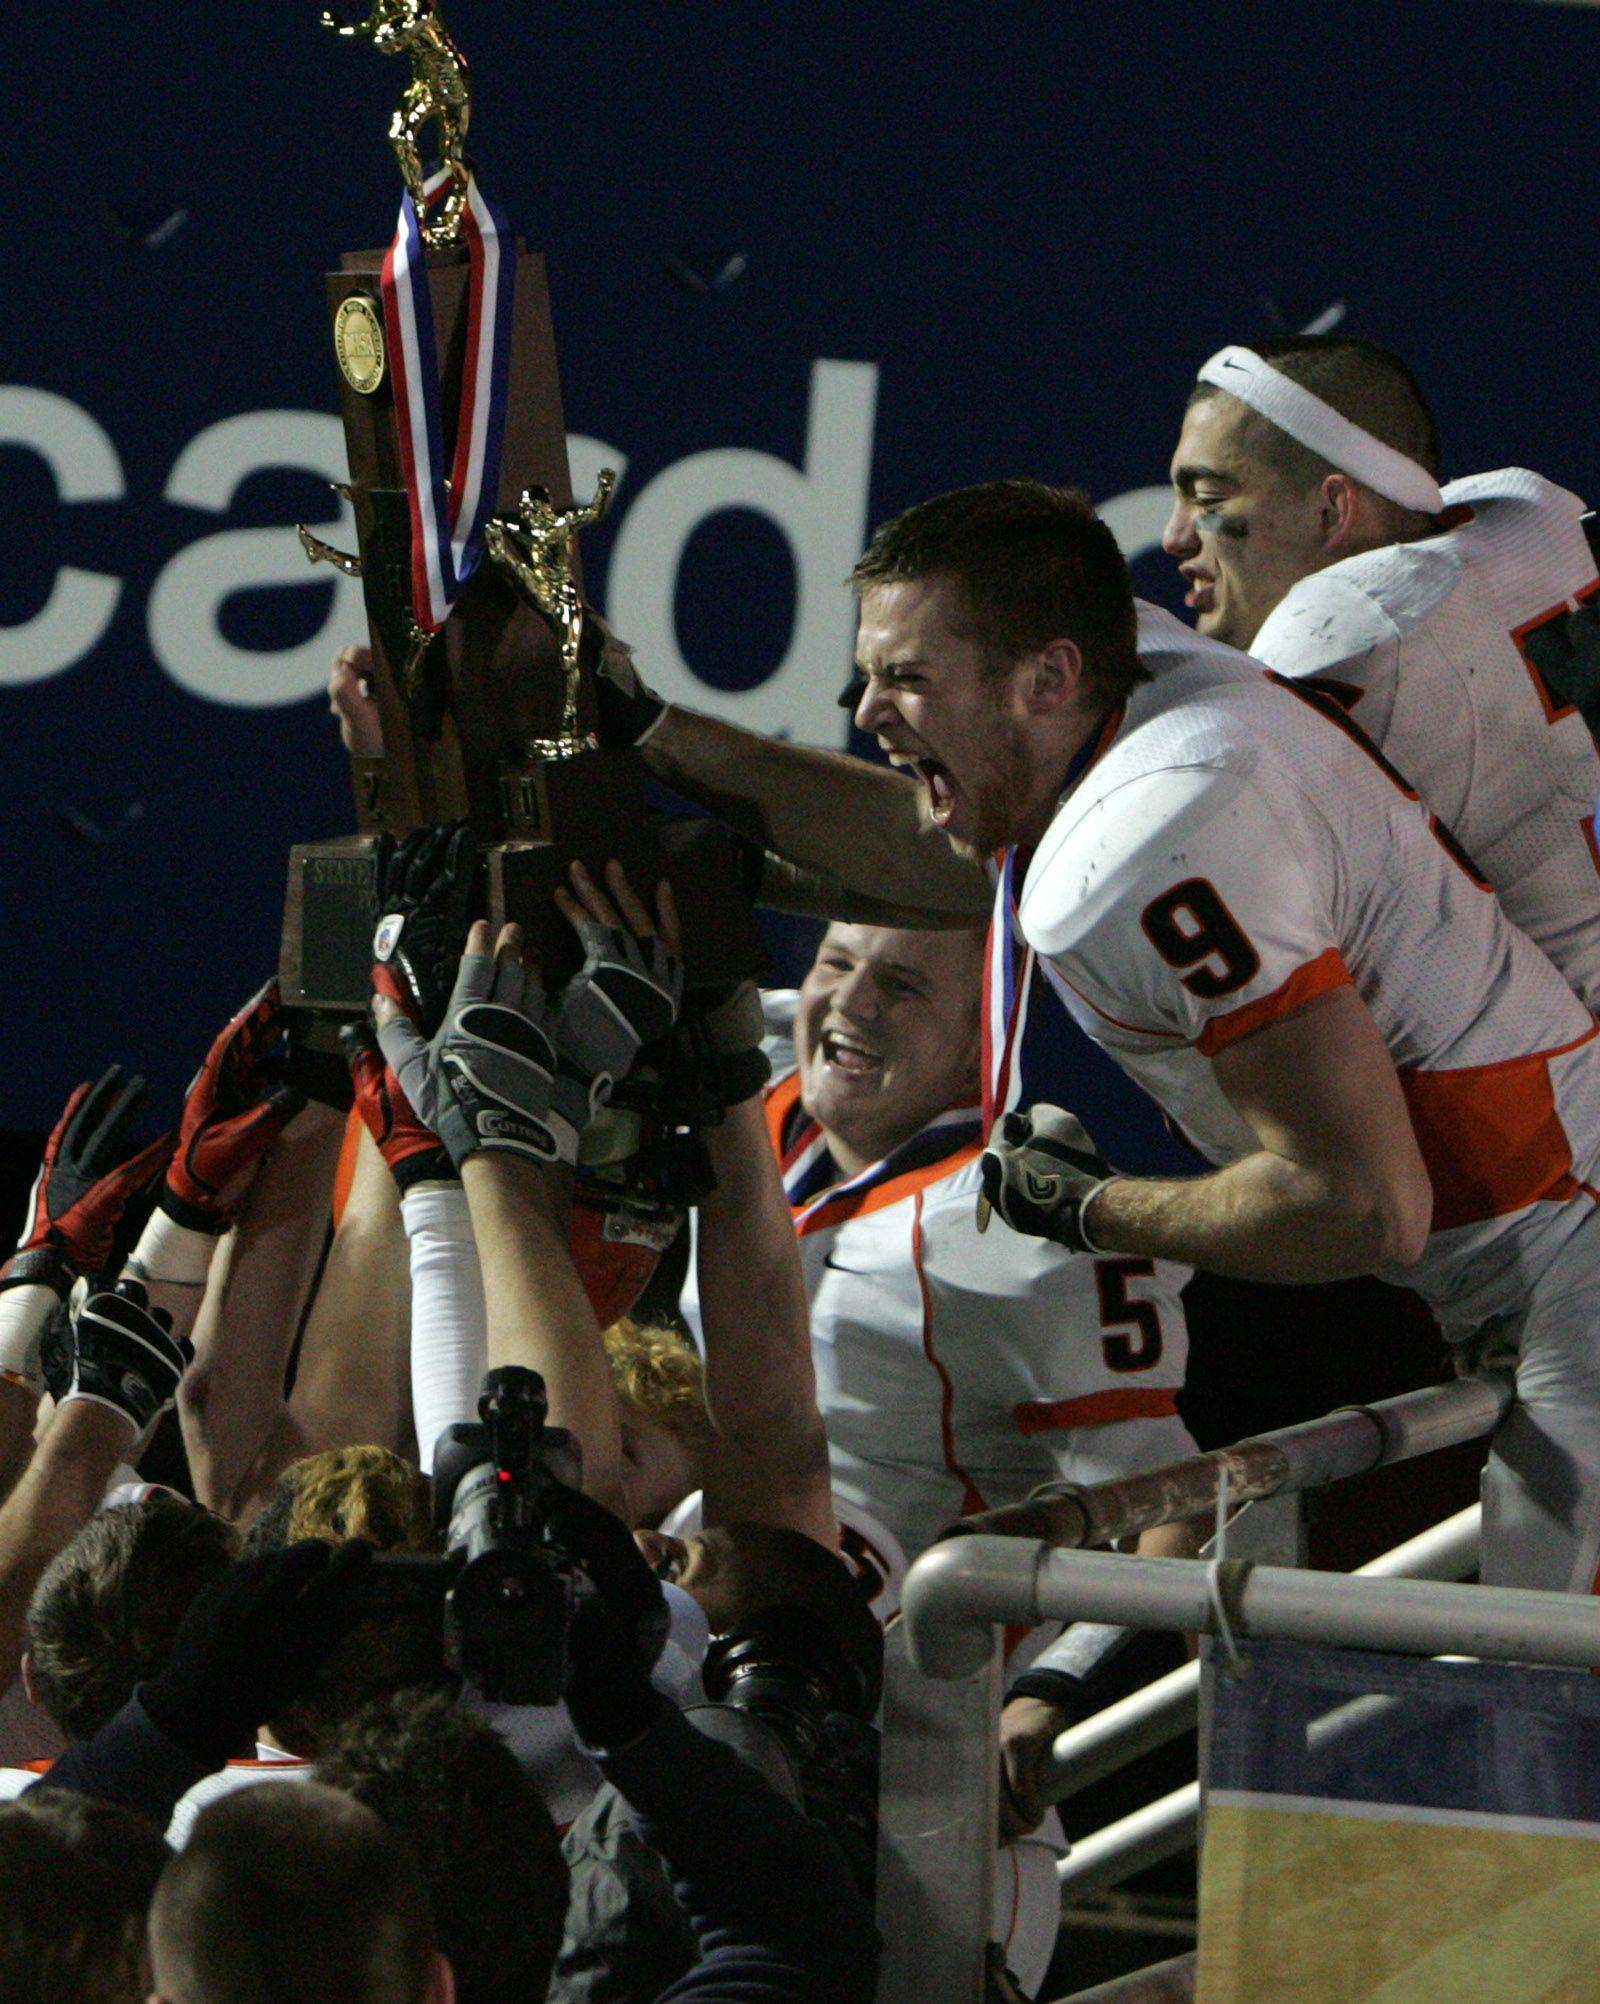 Wheaton Warrenville South's Sam Prete celebrates with the state trophy after winning 28-17 over Lake Zurich in the 7A state title game in Champaign on Saturday, November 27.